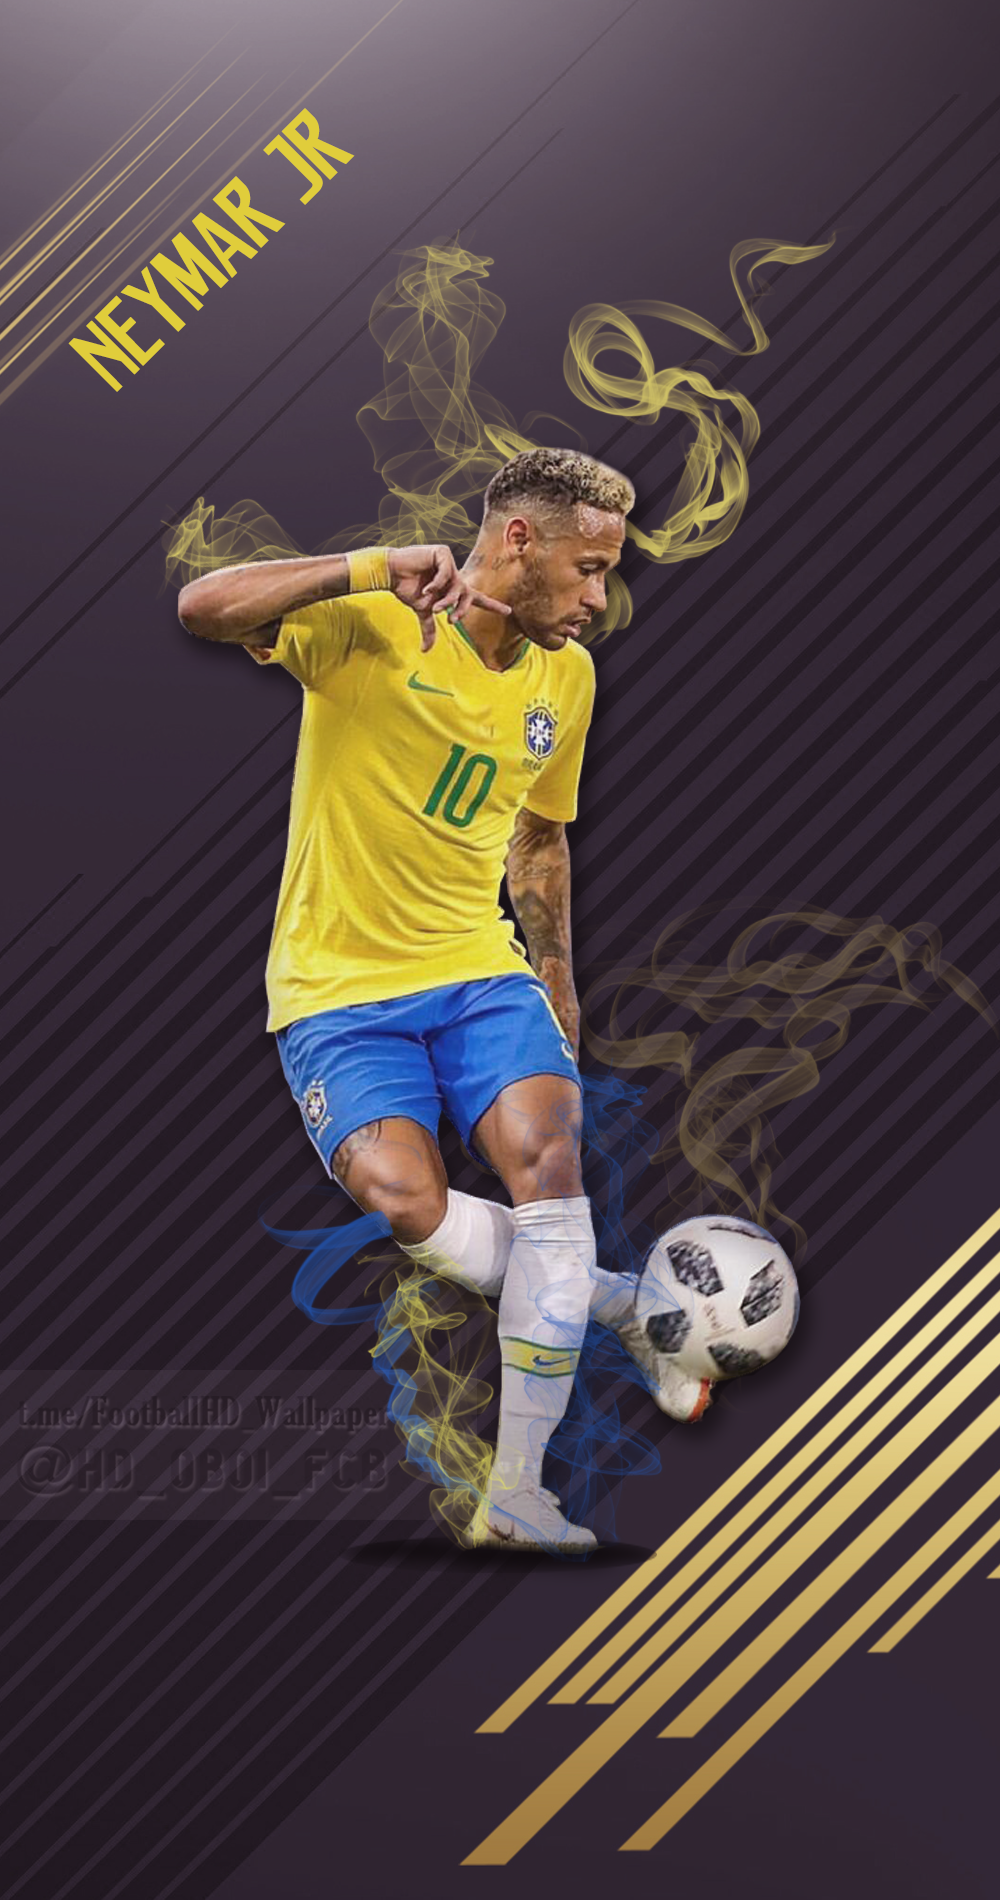 Auto Racing Neymar Cabello Neymar Jr Cabello Fotos De Neymar Neymar Jr 2020 Psg Neymar Ropa Neymar Cabe In 2020 Neymar Jr Wallpapers Neymar Barcelona Neymar Jr